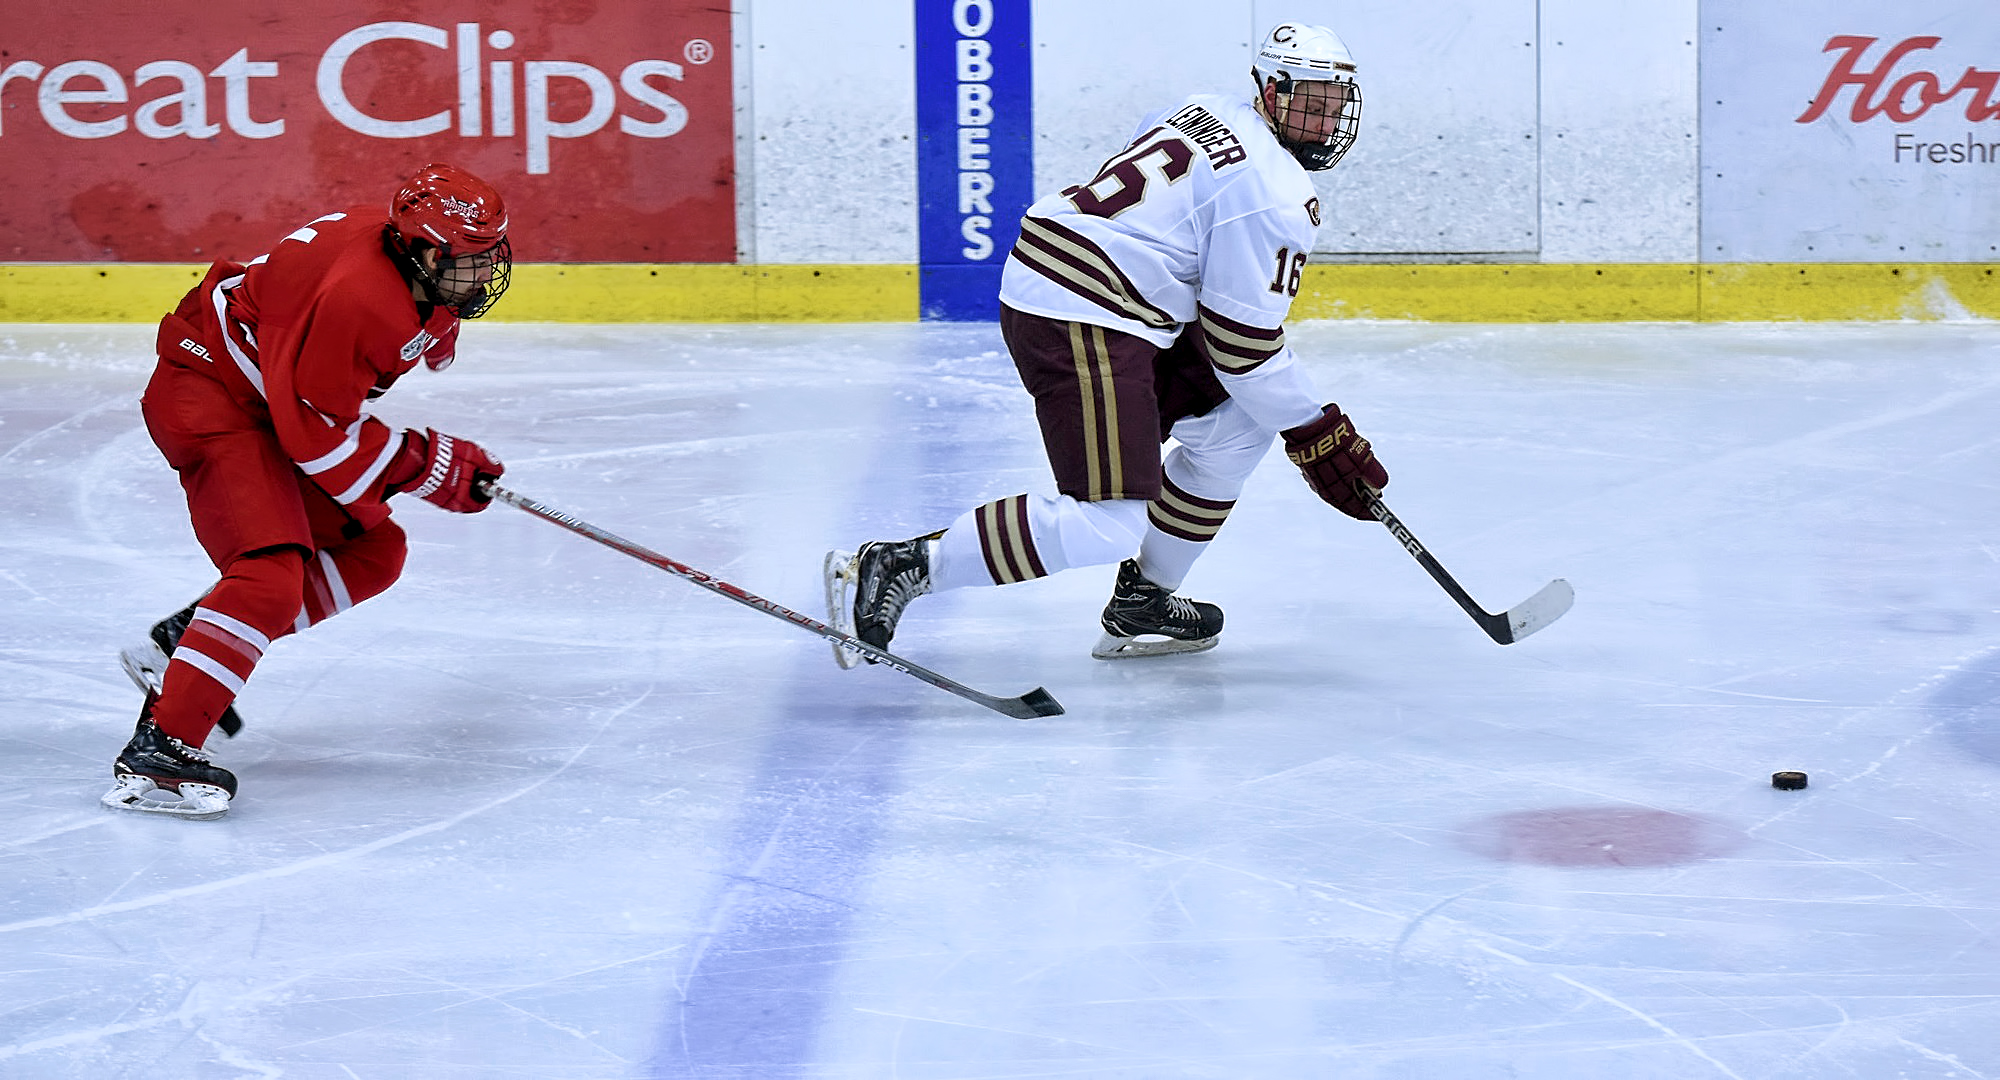 Sophomore Keaton Leininger races the puck up the ice during the Cobbers' 5-3 win over Milw. School of Engineering. Leininger scored his first goal for CC in the second period.